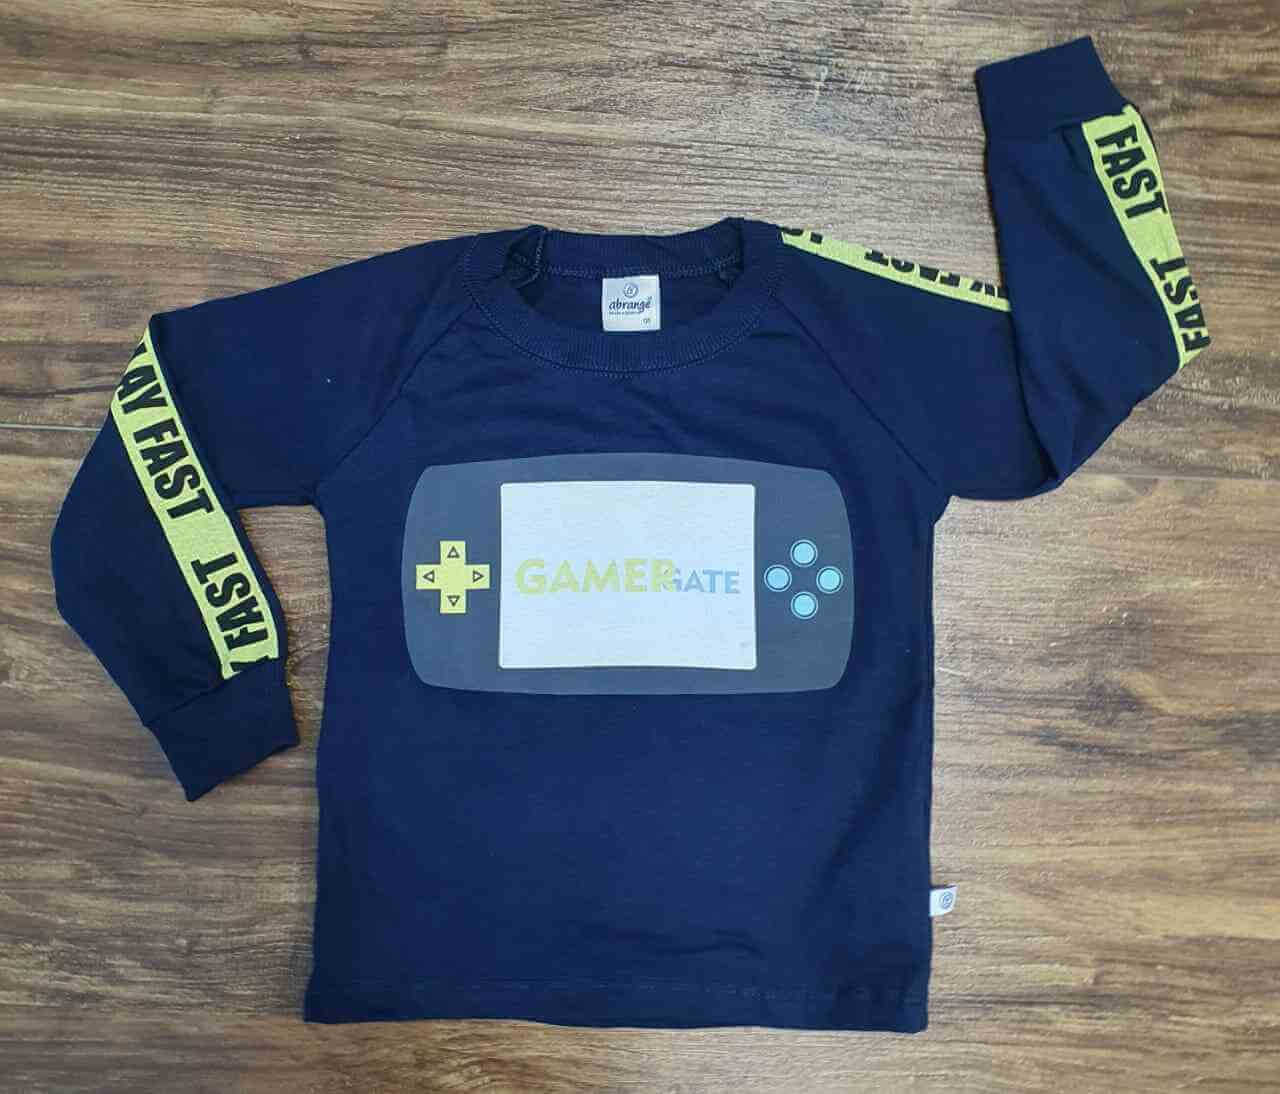 Camiseta Gamer Gate Infantil